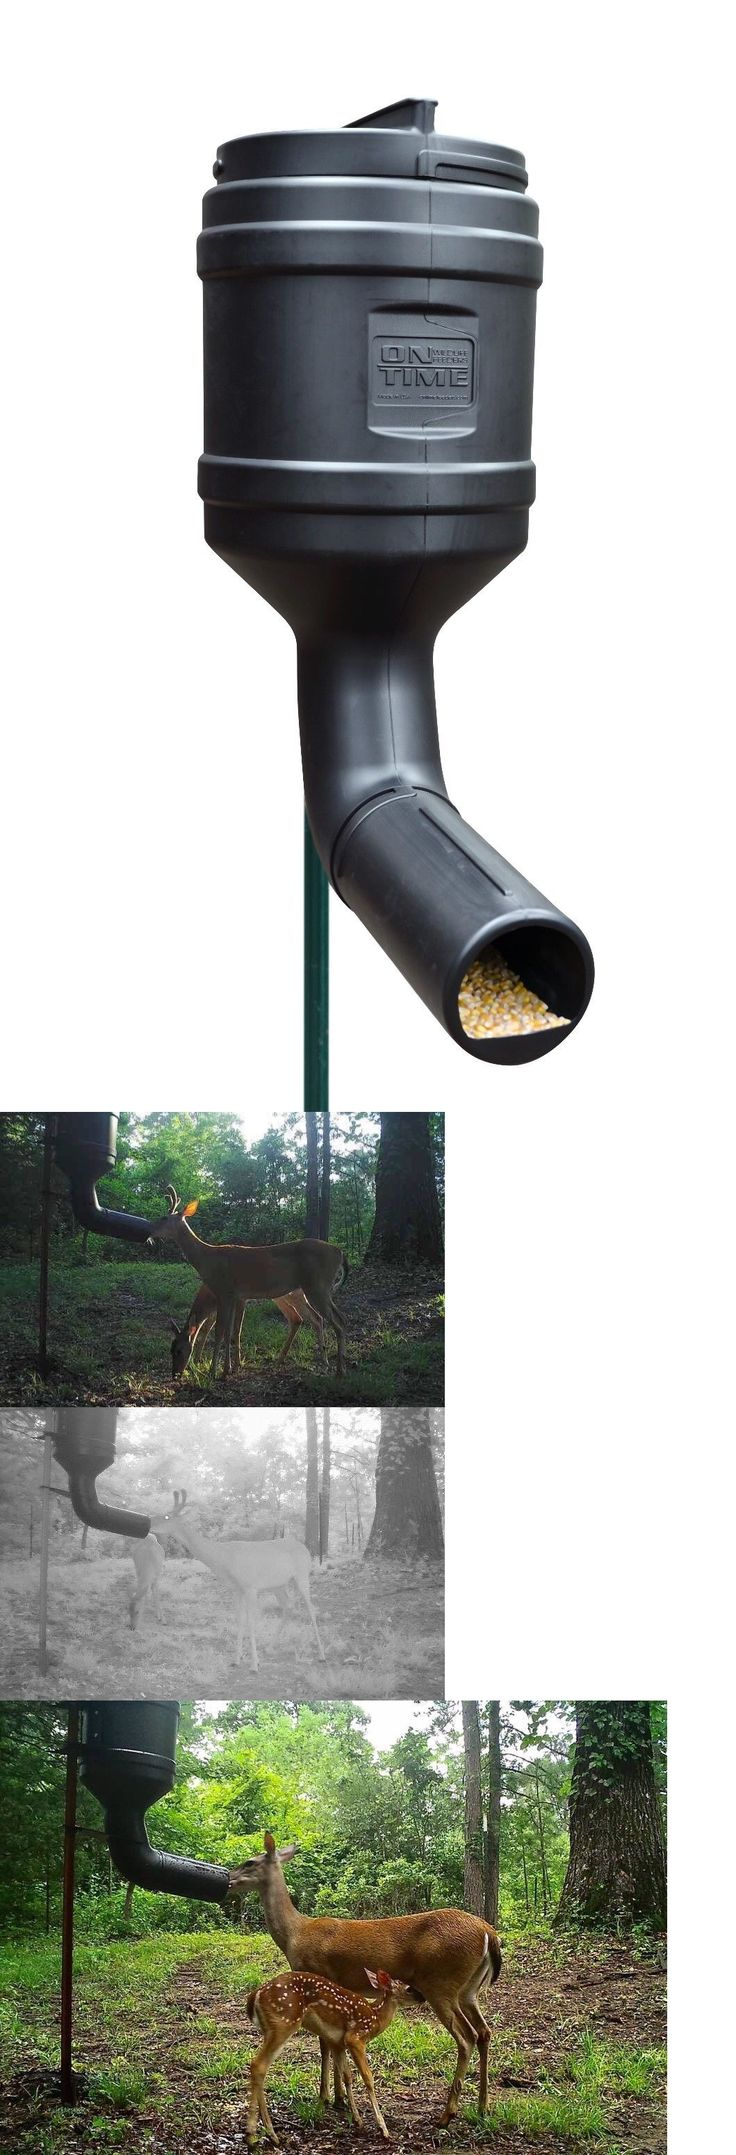 Game Feeders and Feed 52504: T Post Deer Feeder On-Time Feeder 80Lb Capacity Gravity Feeder Protein Feeder -> BUY IT NOW ONLY: $69.95 on eBay!